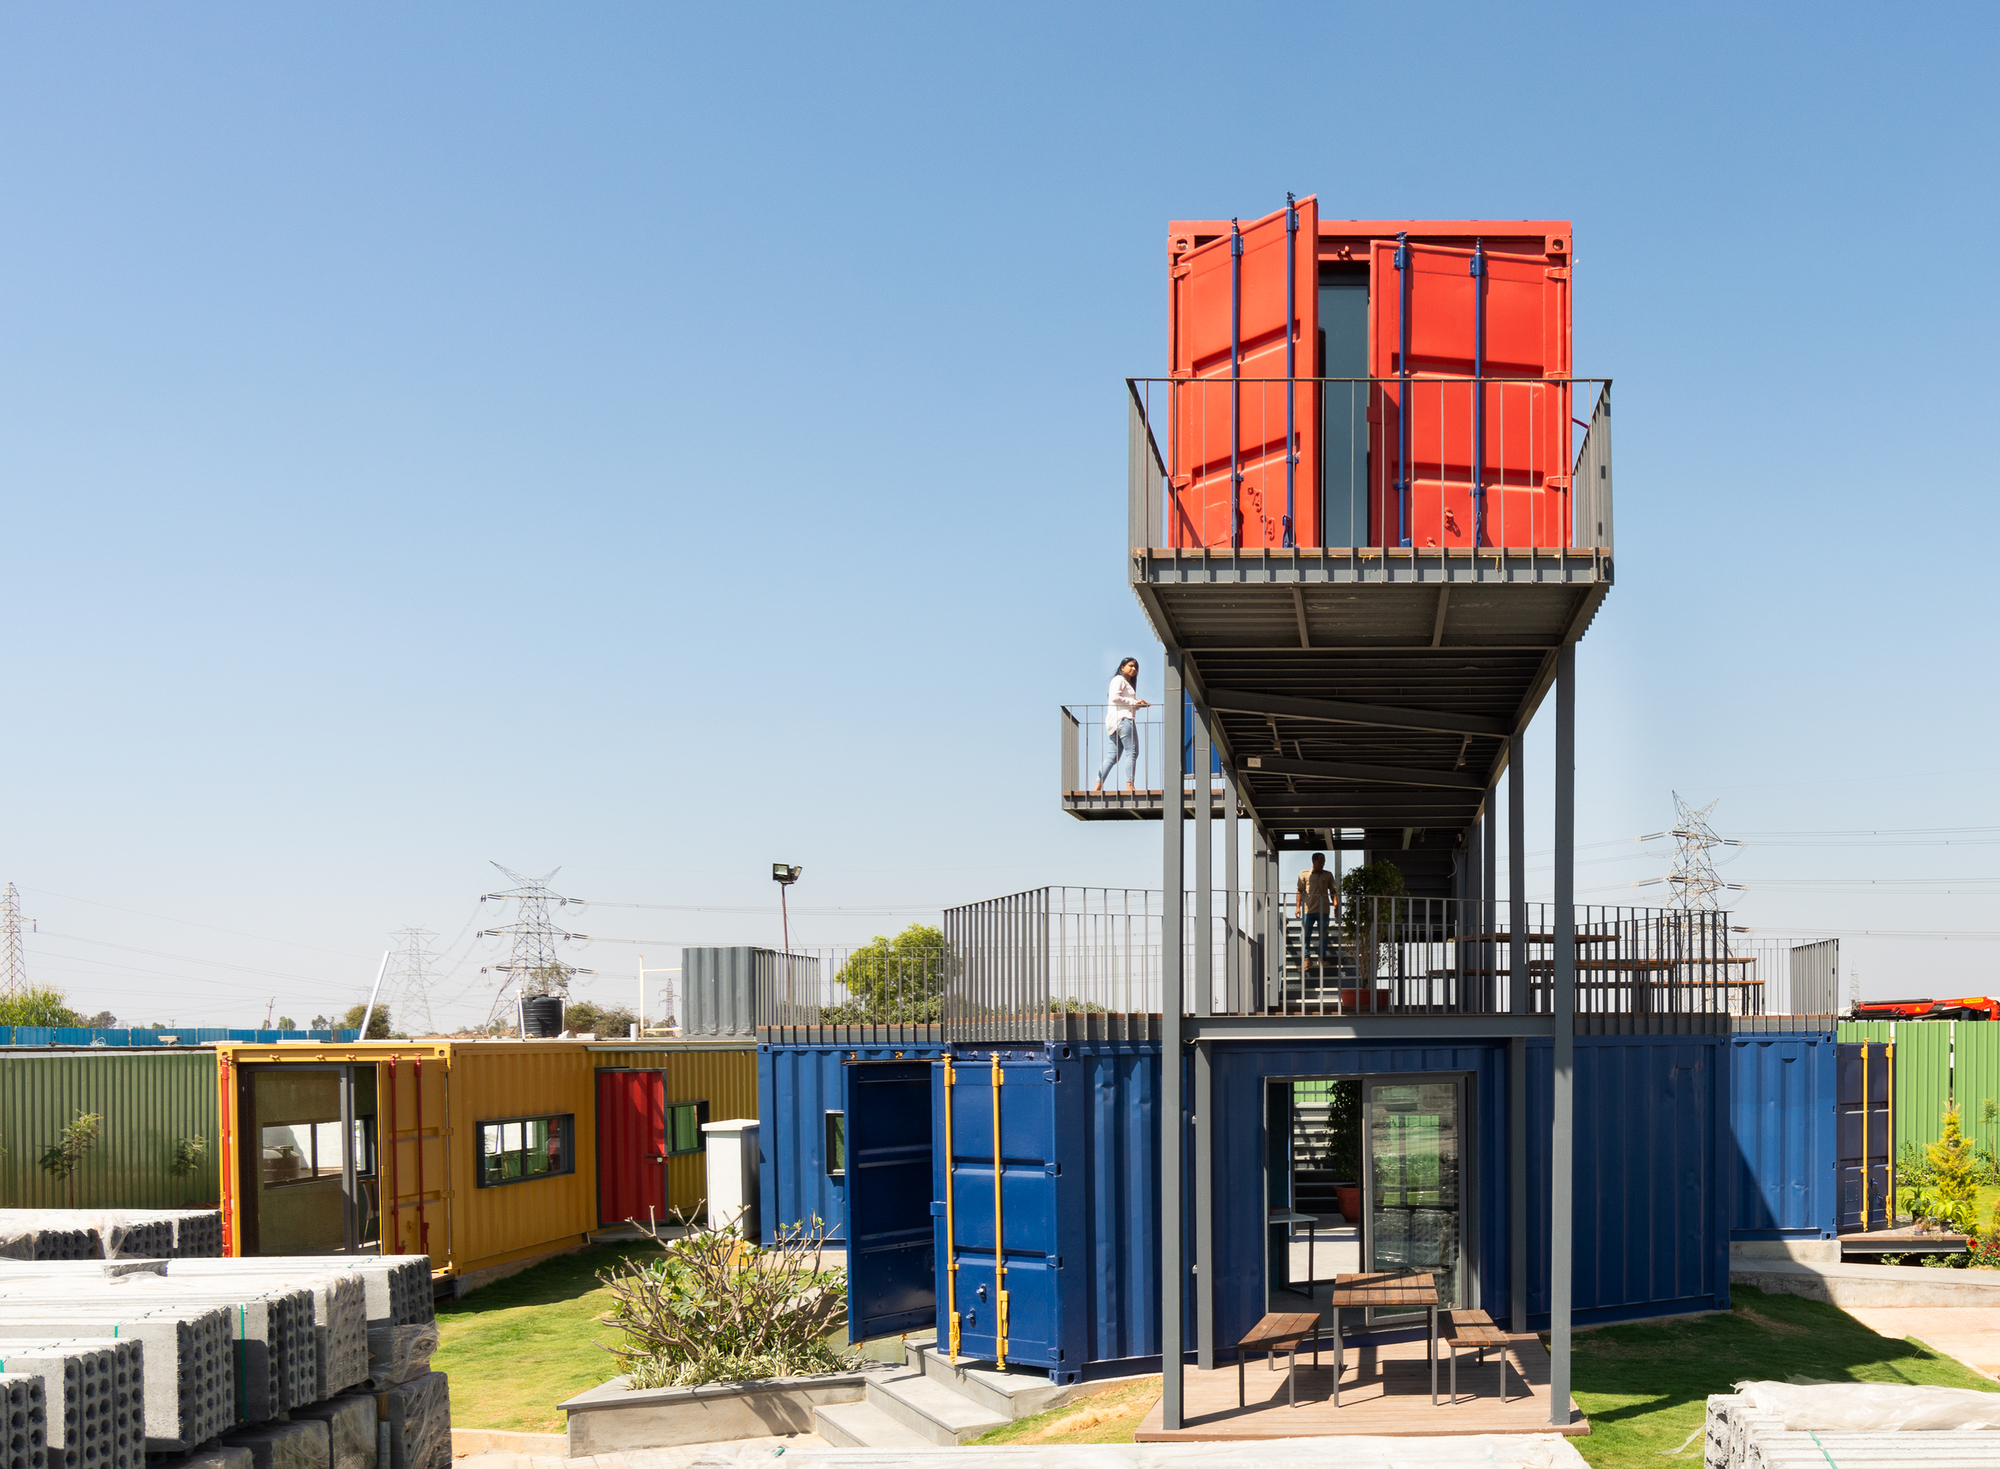 Colourfully Contained Experiences / Balan and Nambisan Architects